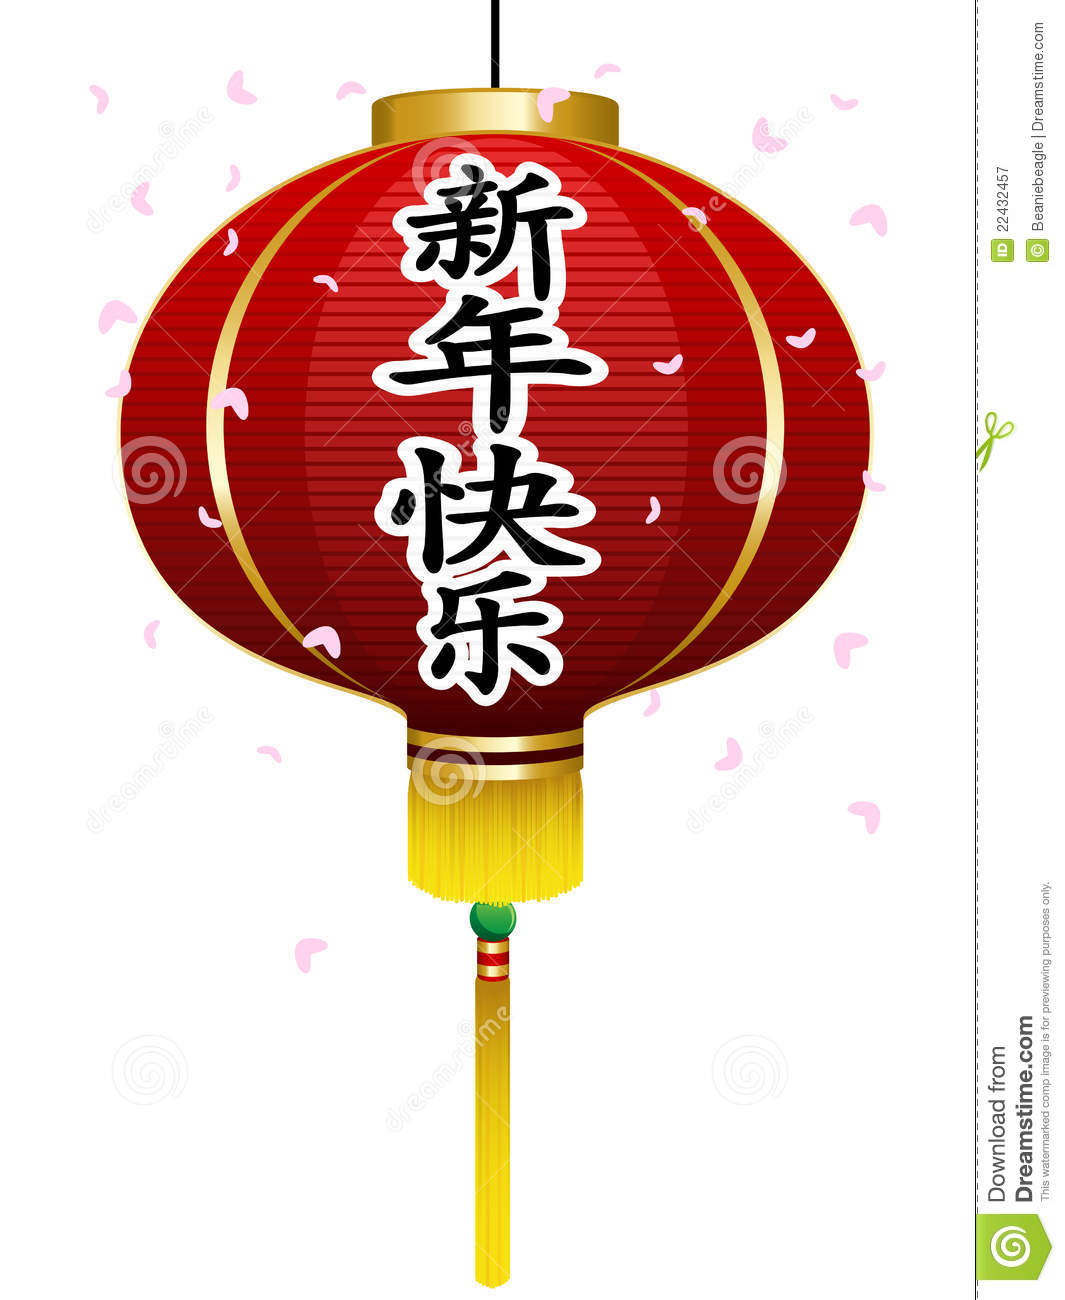 ... traditional Chinese Lantern with a Happy New Year message in Chinese